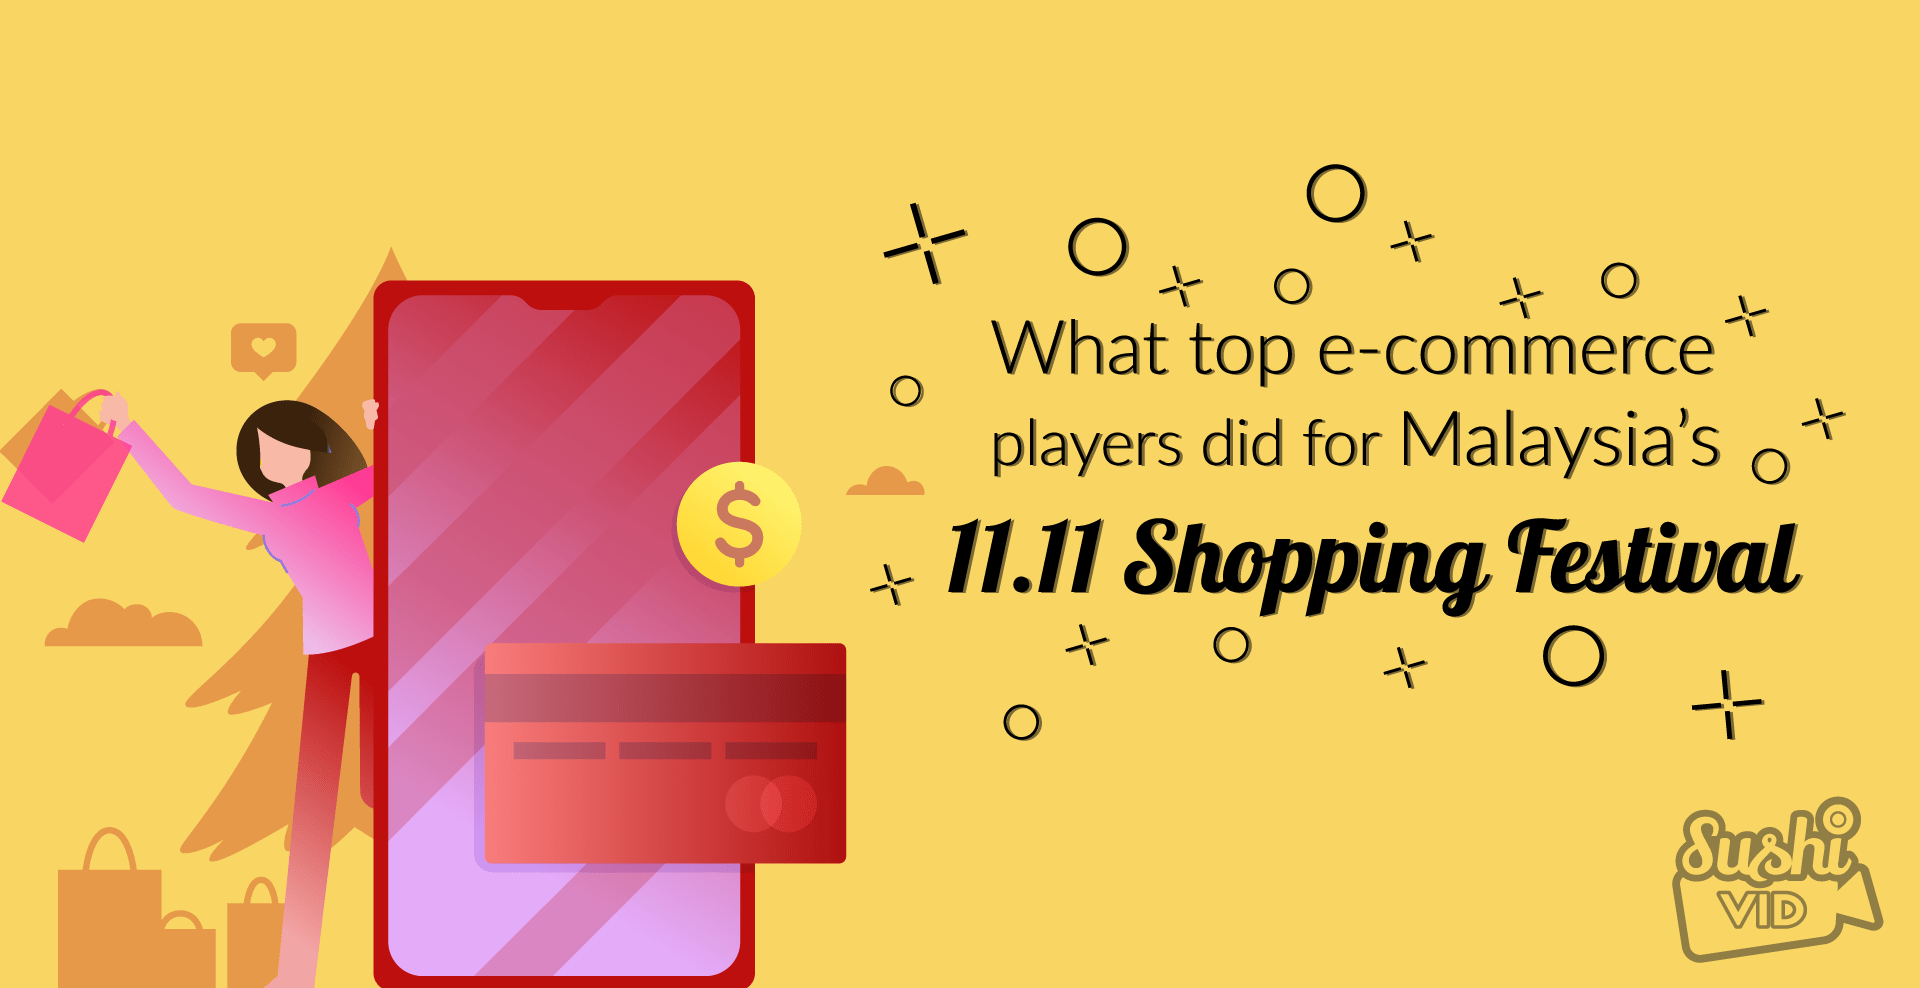 What local top e-commerce players did for Malaysia's 11.11 Shopping Festival